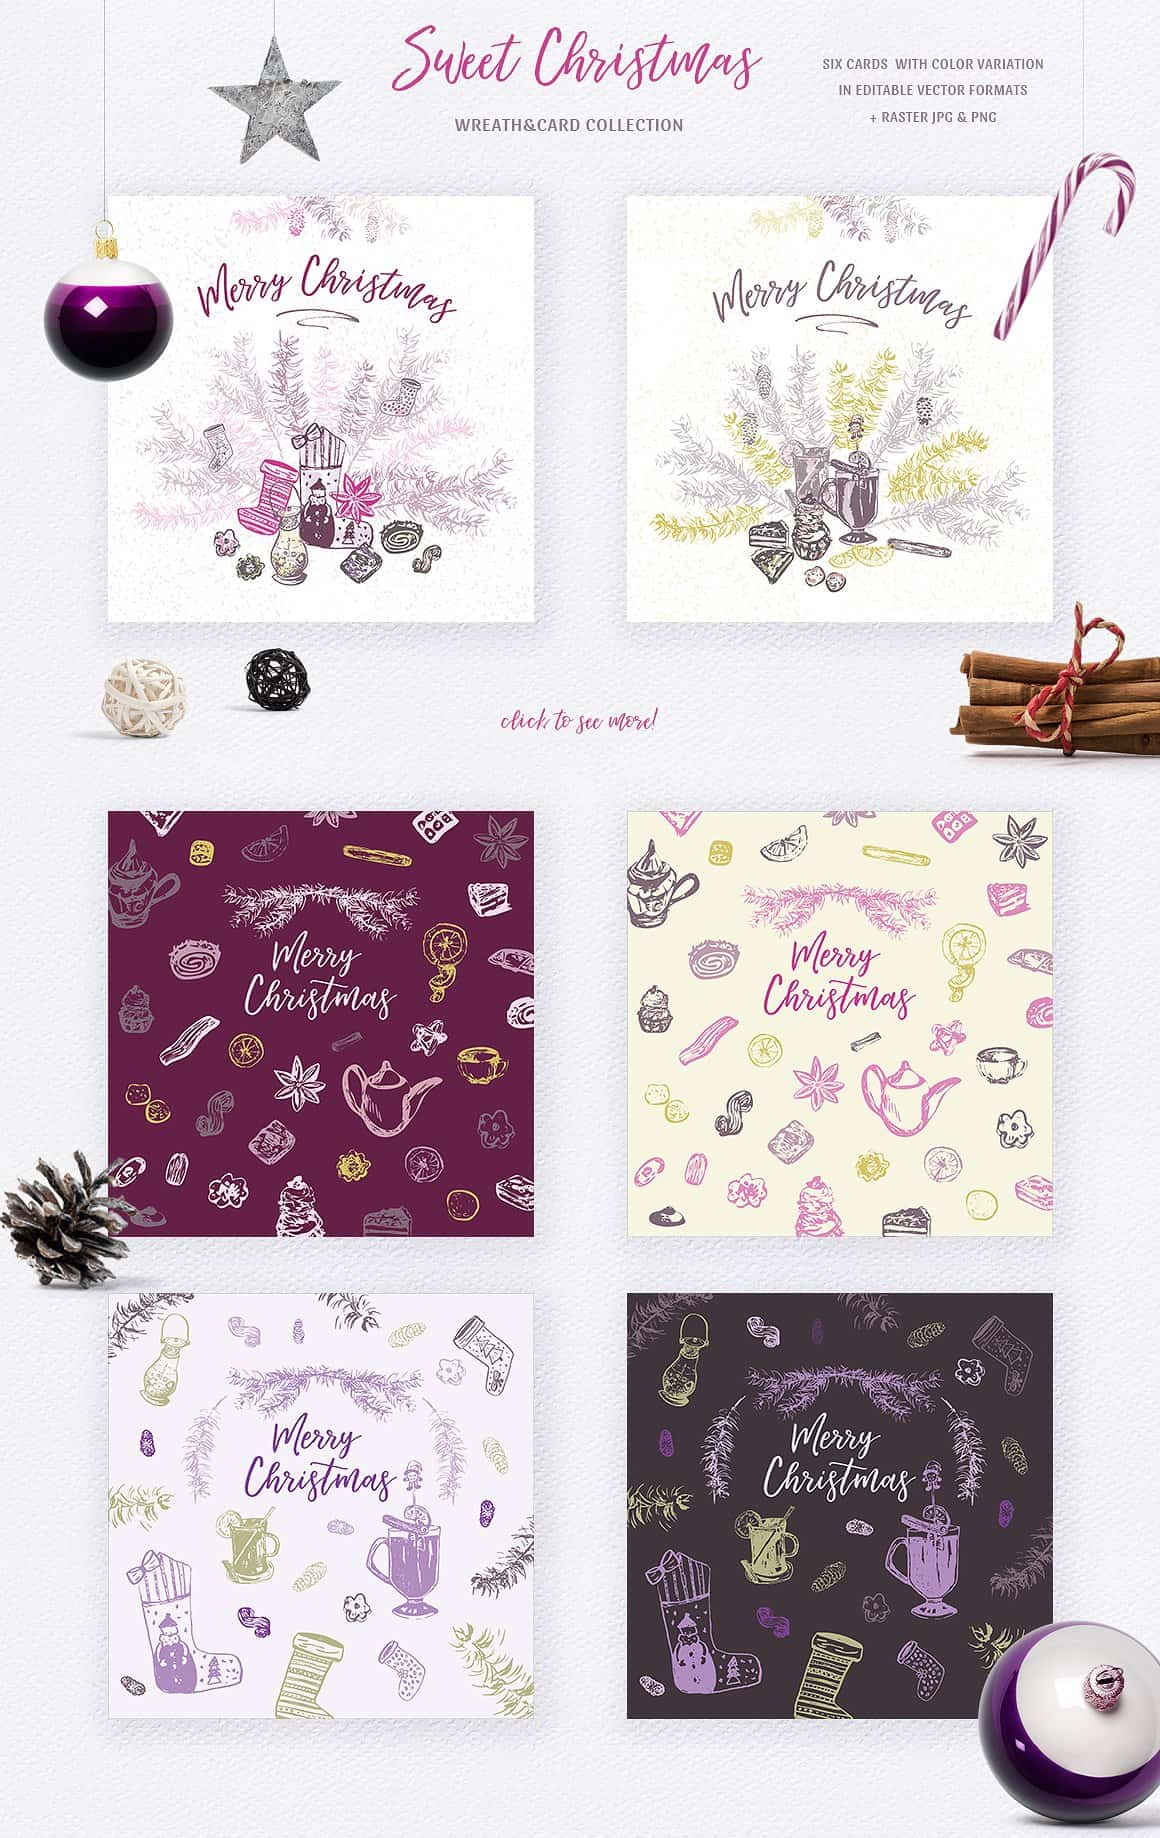 Sweet Christmas: Vector Hand-Sketched Set - just $7 - presentation3 min 1